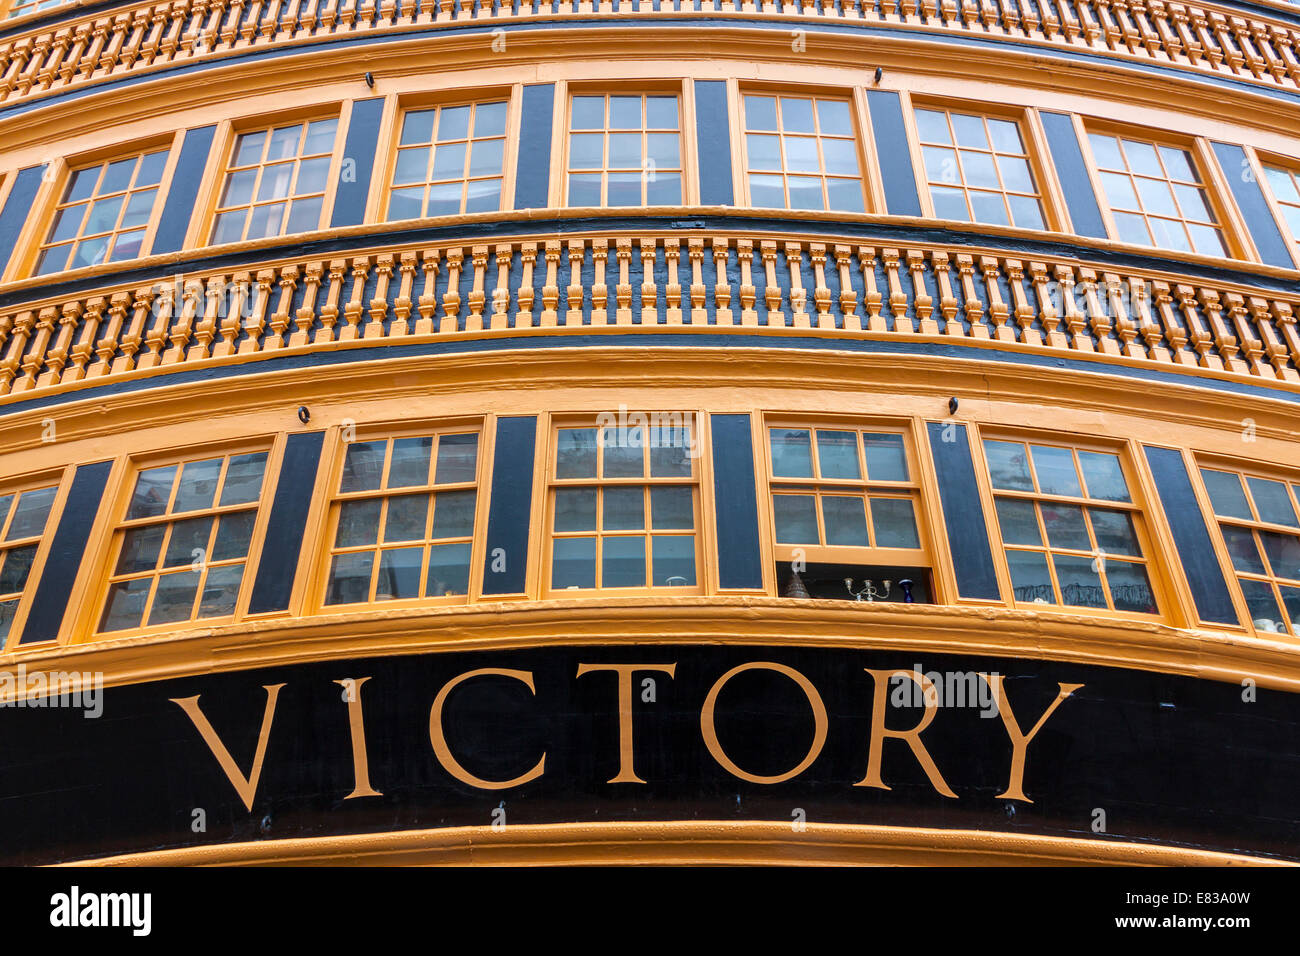 HMS Victory, Nelson's flagship, in Portsmouth. Stock Photo